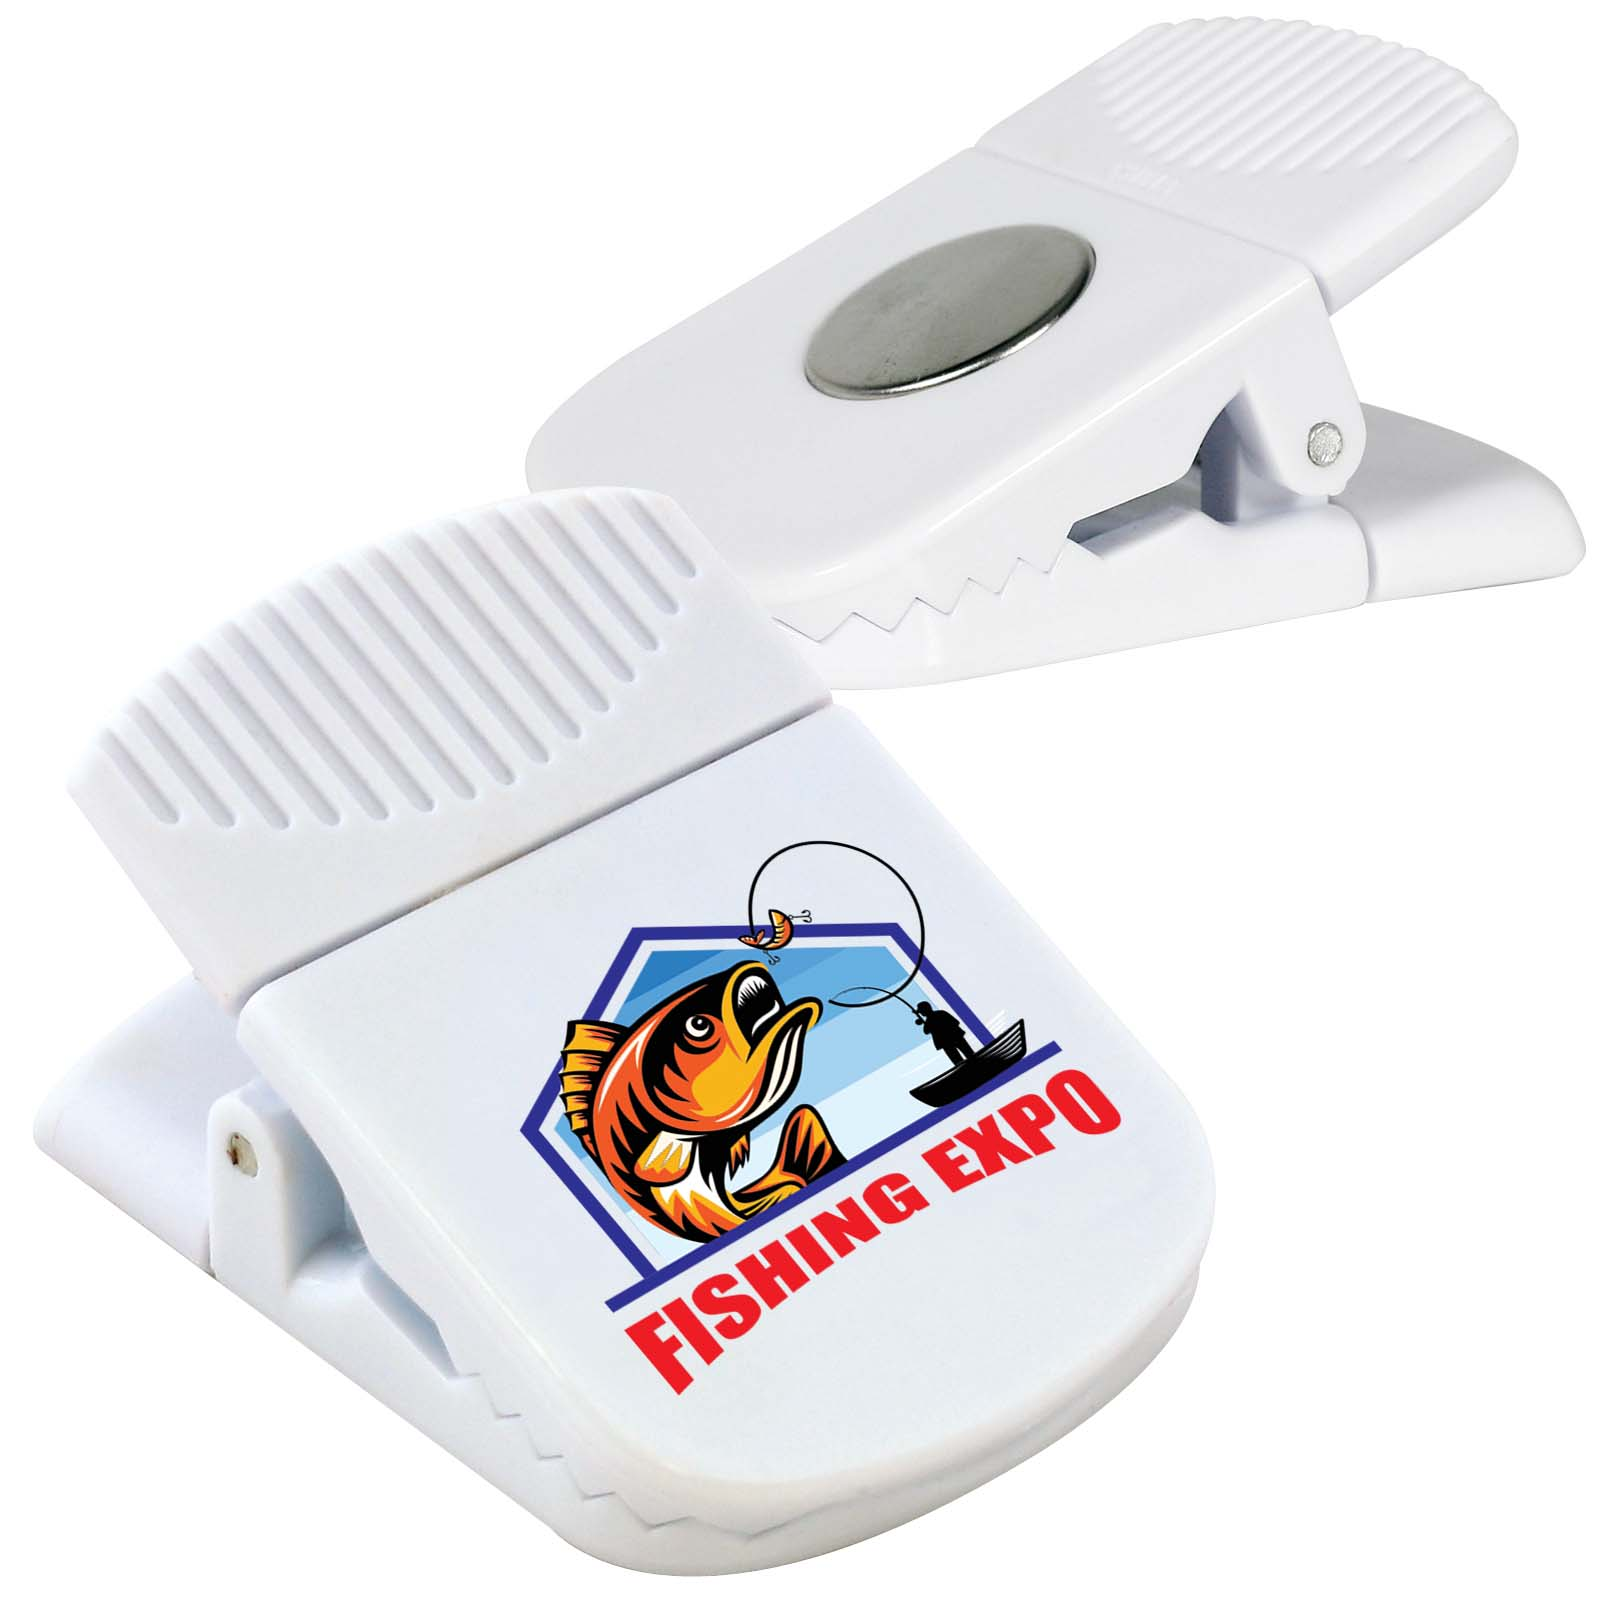 Croc Magnetic Clip - Includes a 1 colour printed logo